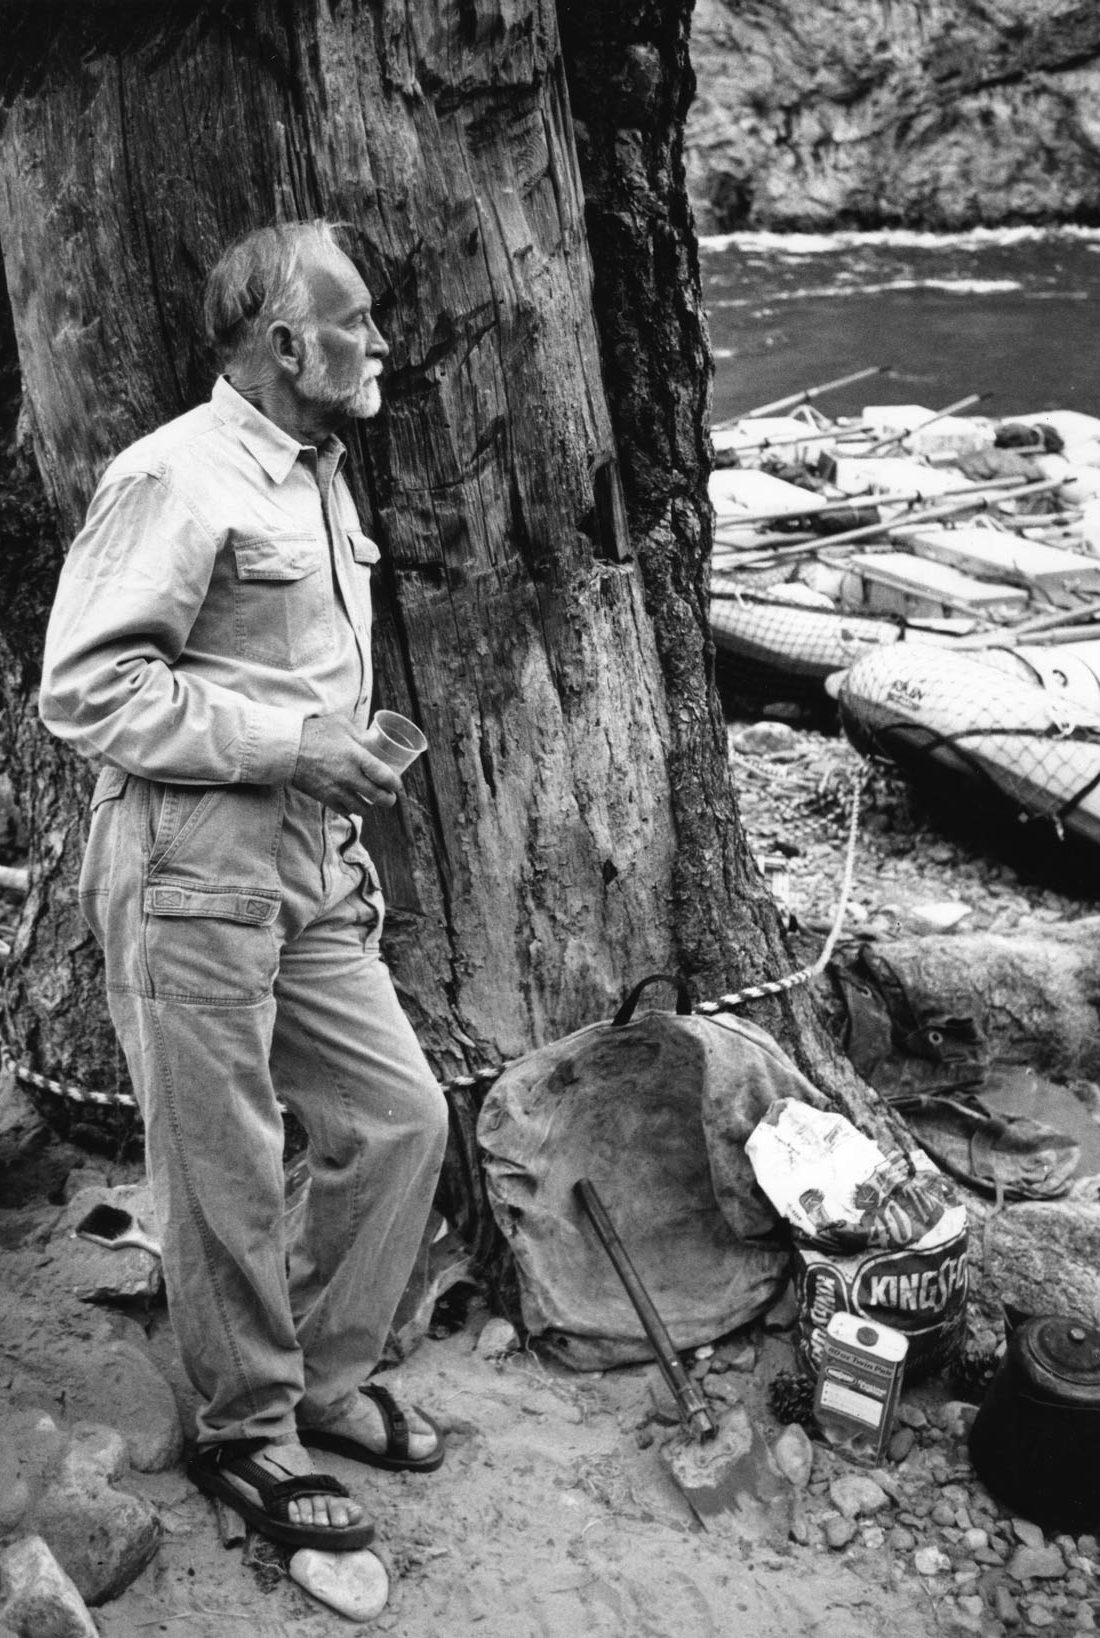 Robbins at the Middle Fork of the Salmon River in Idaho. He guided Royal Robbins employees on the classic, seven-day, self-supported kayak trip on an annual company retreat. [Photo] Robbins family collection